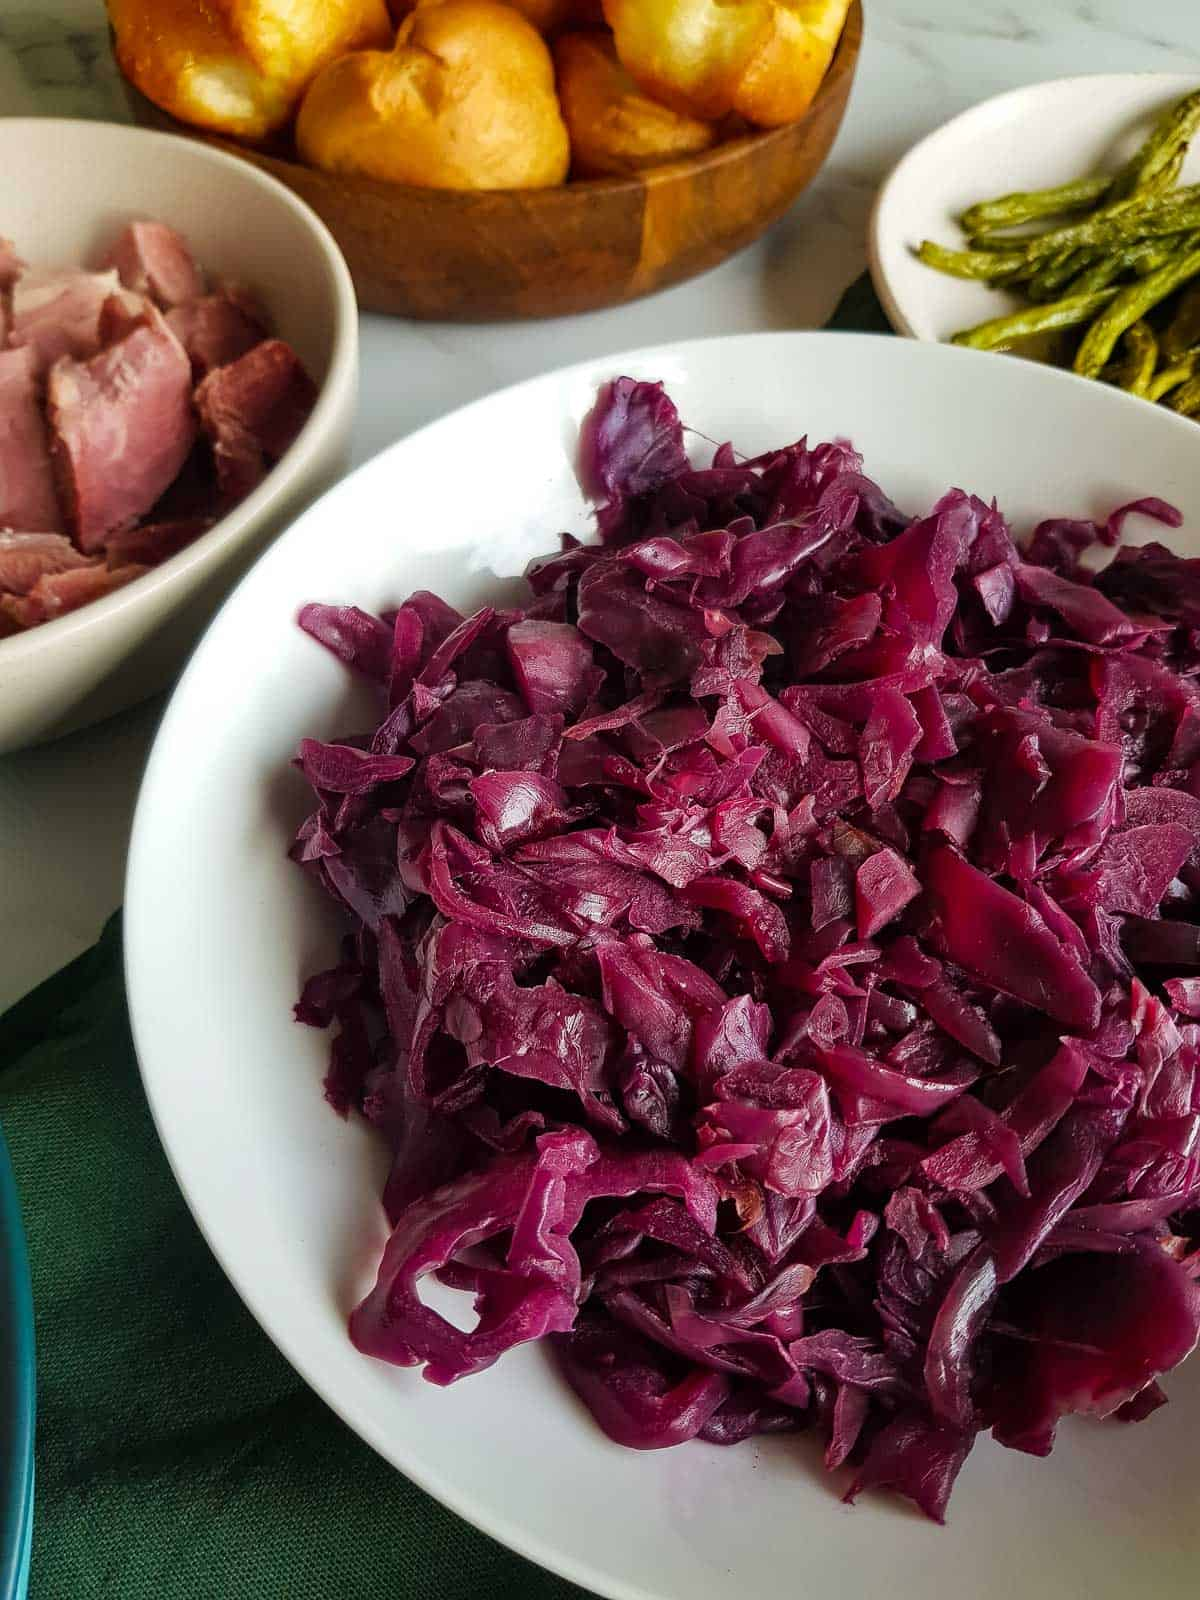 Close up of red cabbage in a bowl at a dinner table.